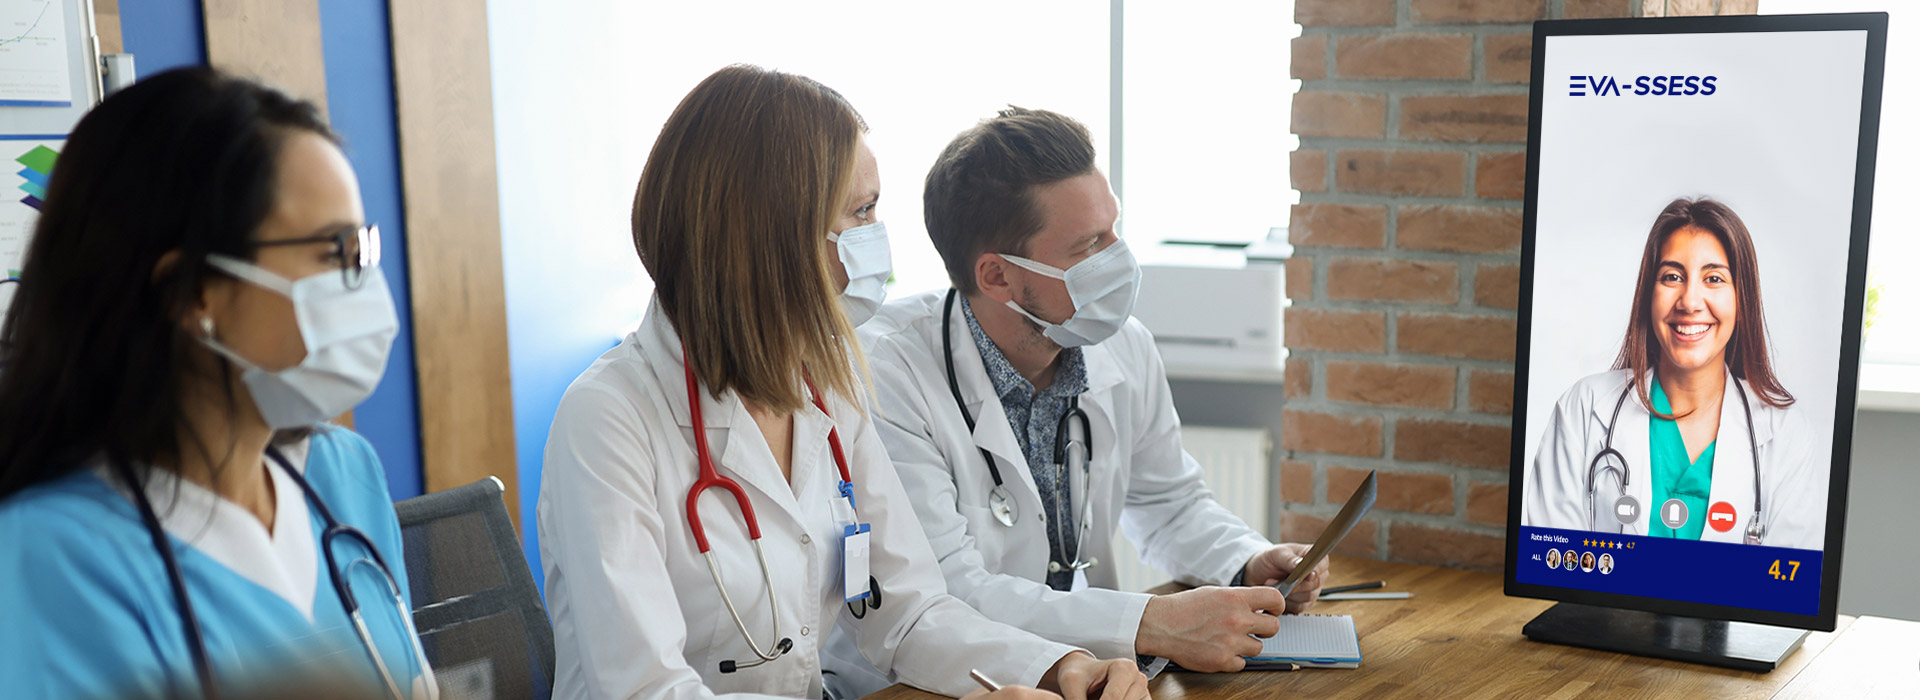 A picture of doctors conducting an automated video assessment